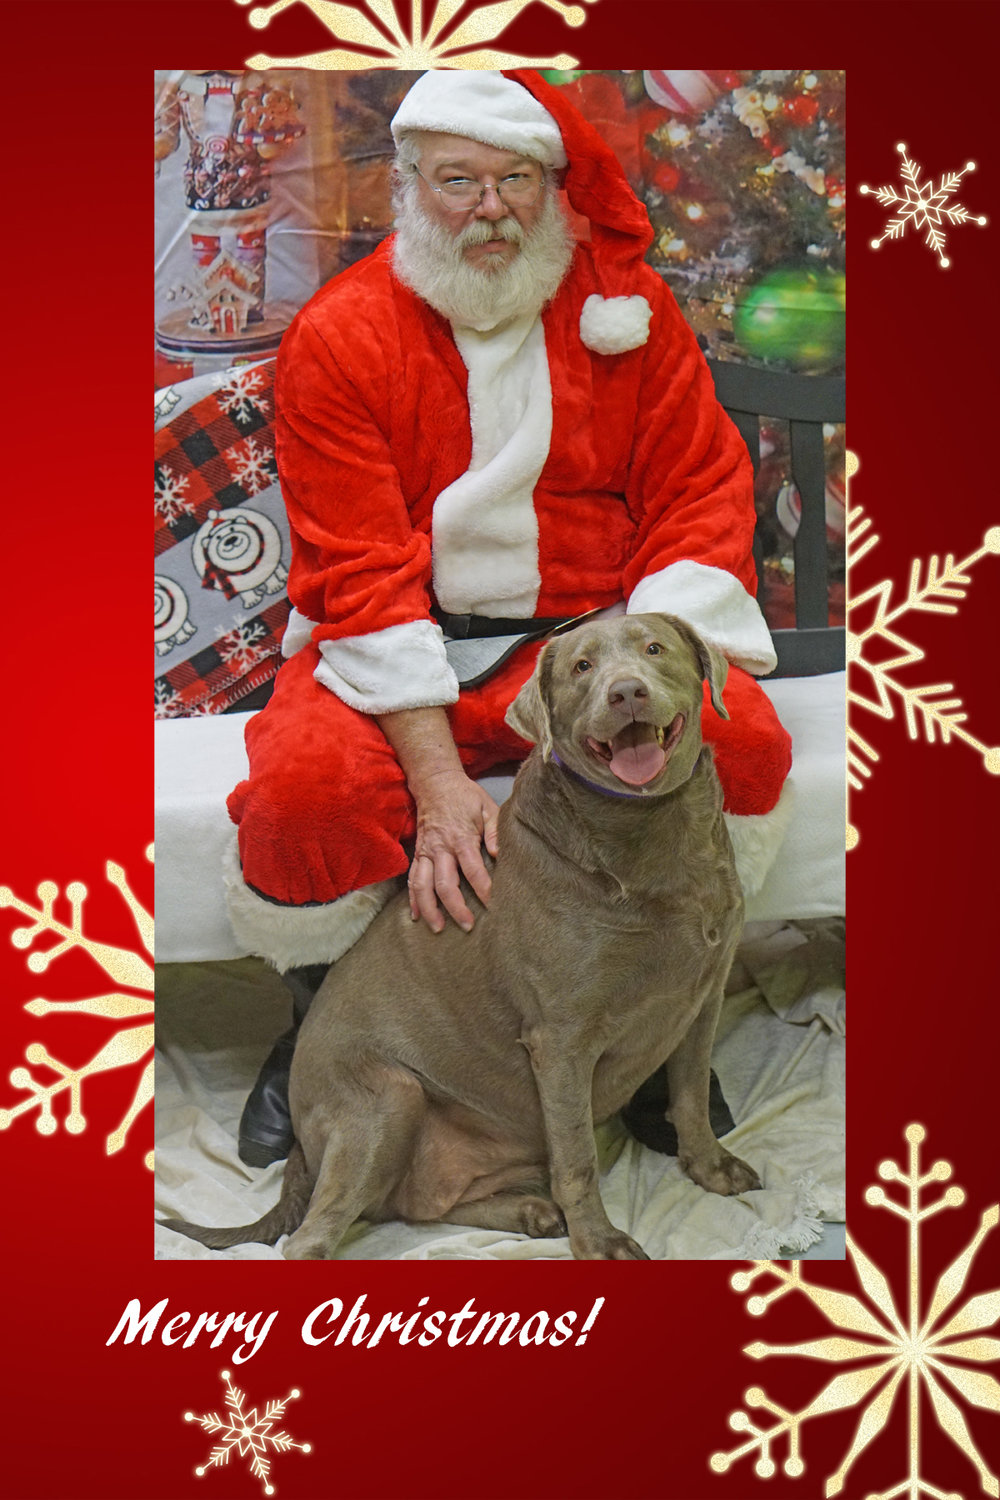 Santa Paws 2017 - This year was as fun as previous years with Santa Paws! We were able to witness the excitement in many children's eyes once they saw Santa! Remember, this is an annual fundraiser, so every year we have photos with Santa and fun games! This year, we even had our very own Movie Theater which featured the Christmas Hit Movie, Polar Express, and we offered delicious popcorn! Hopefully, we will see you next year!!!